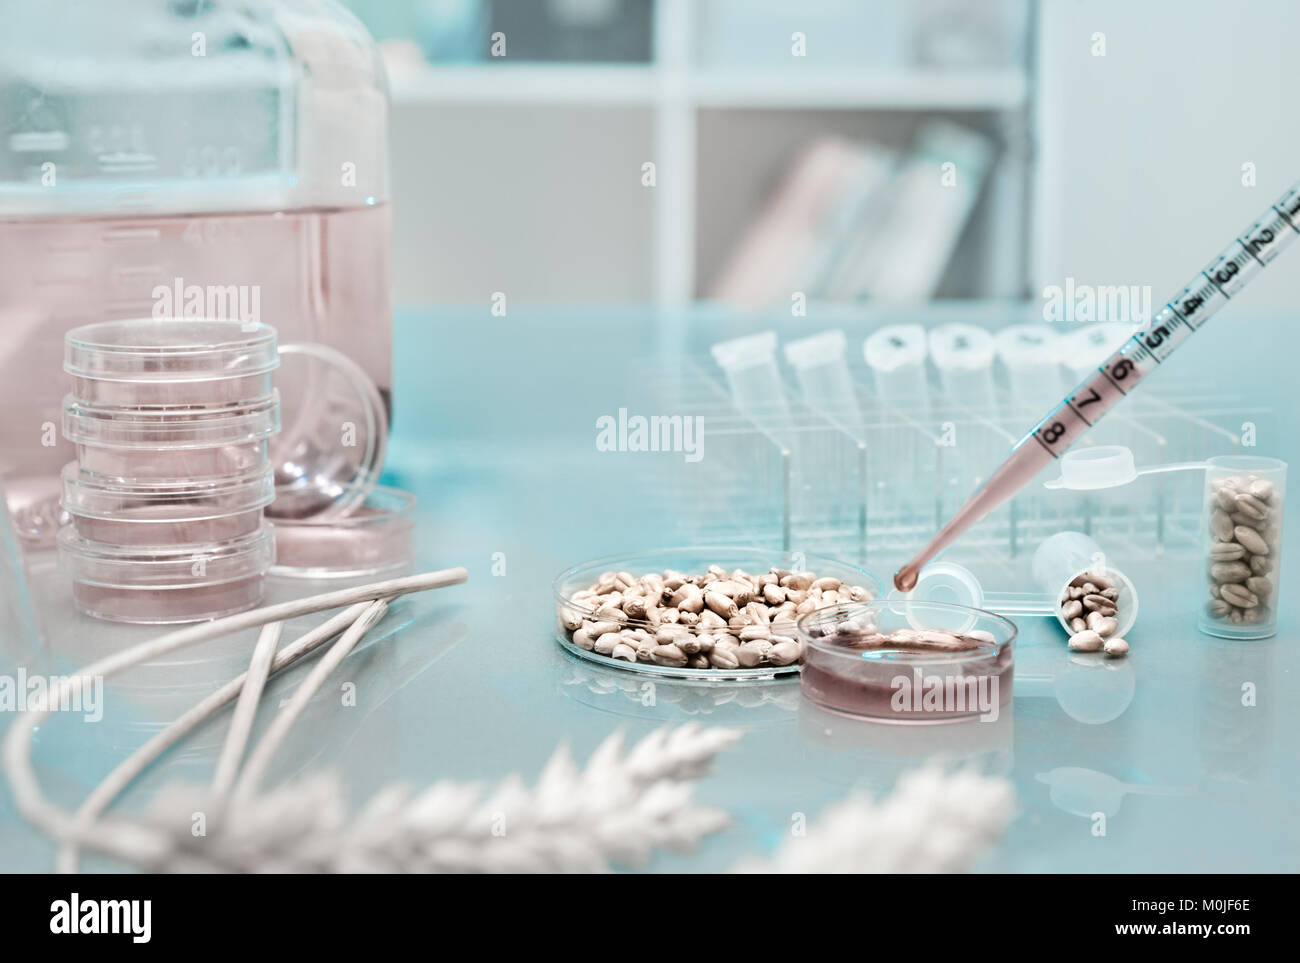 Cell culture assay to test genetically modified wheat - Stock Image